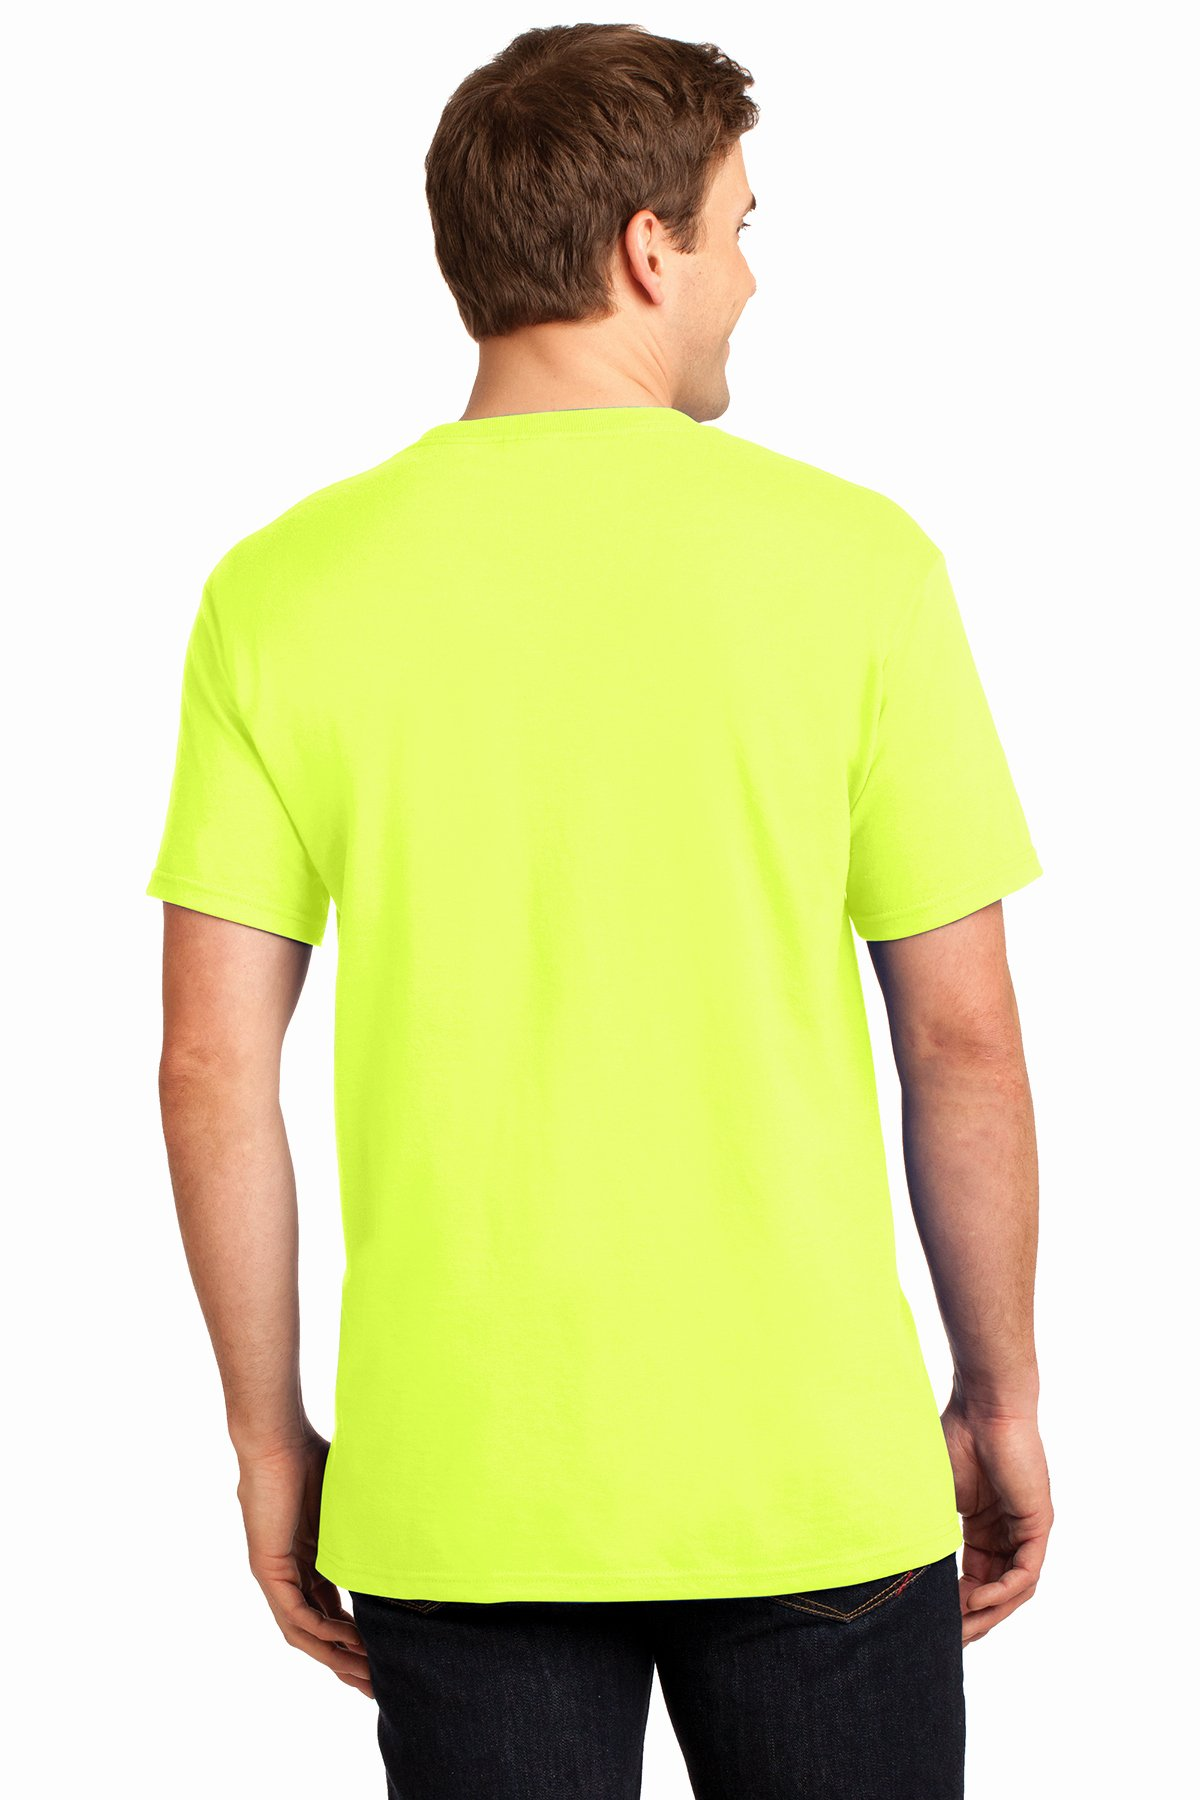 T Shirt Sale Flyer Lovely Jerzees Dri Power Active 50 50 Cotton Poly Pocket T